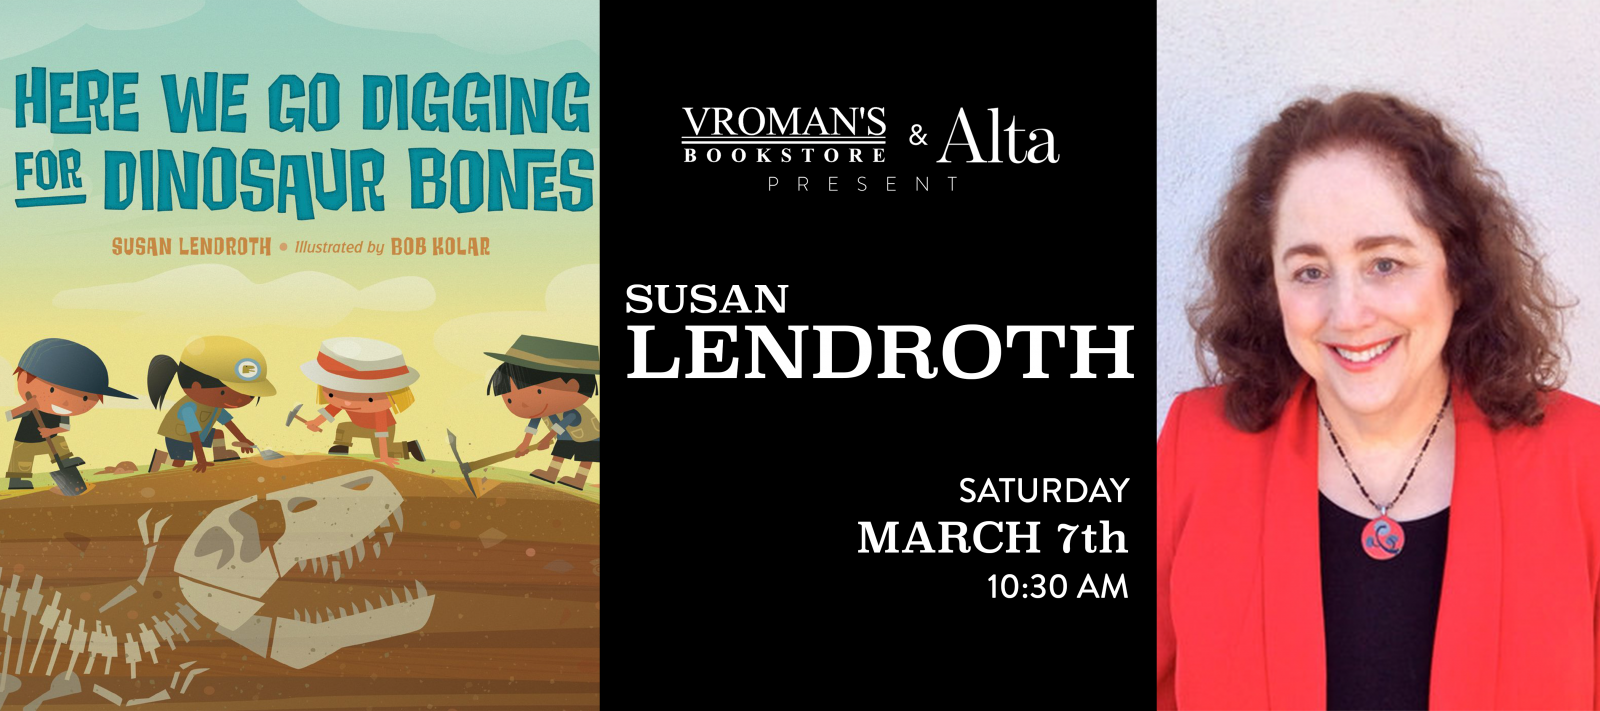 Susan Lendroth book signing on Saturday, March 7, at 10:30am